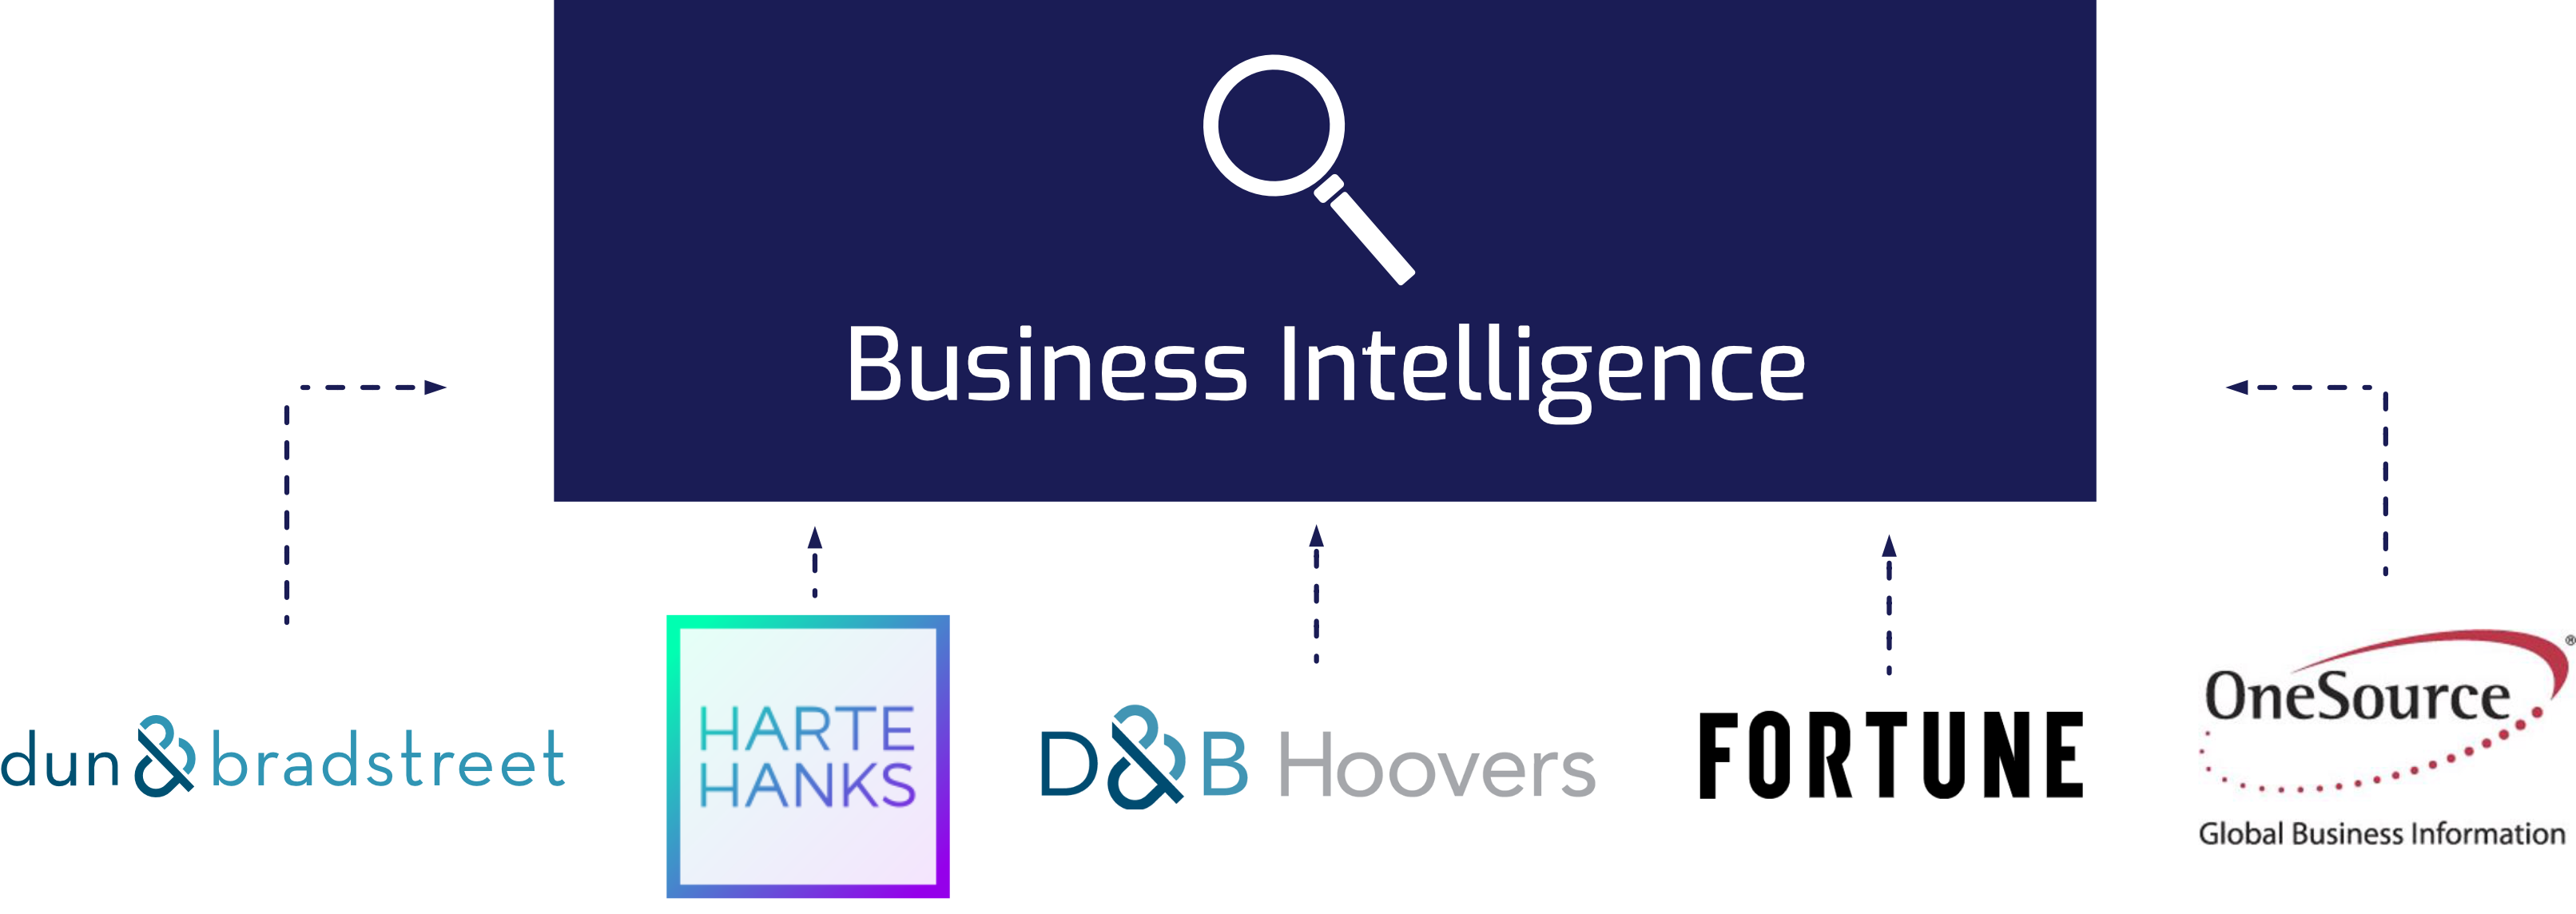 The image shows the companies we worked with to intergrate their services into an internal information infrastructure for global enterprises. Companies from left to right - Dun and Bradstreet, Harte Hanks, Hoovers Inc, Fortune and One Source